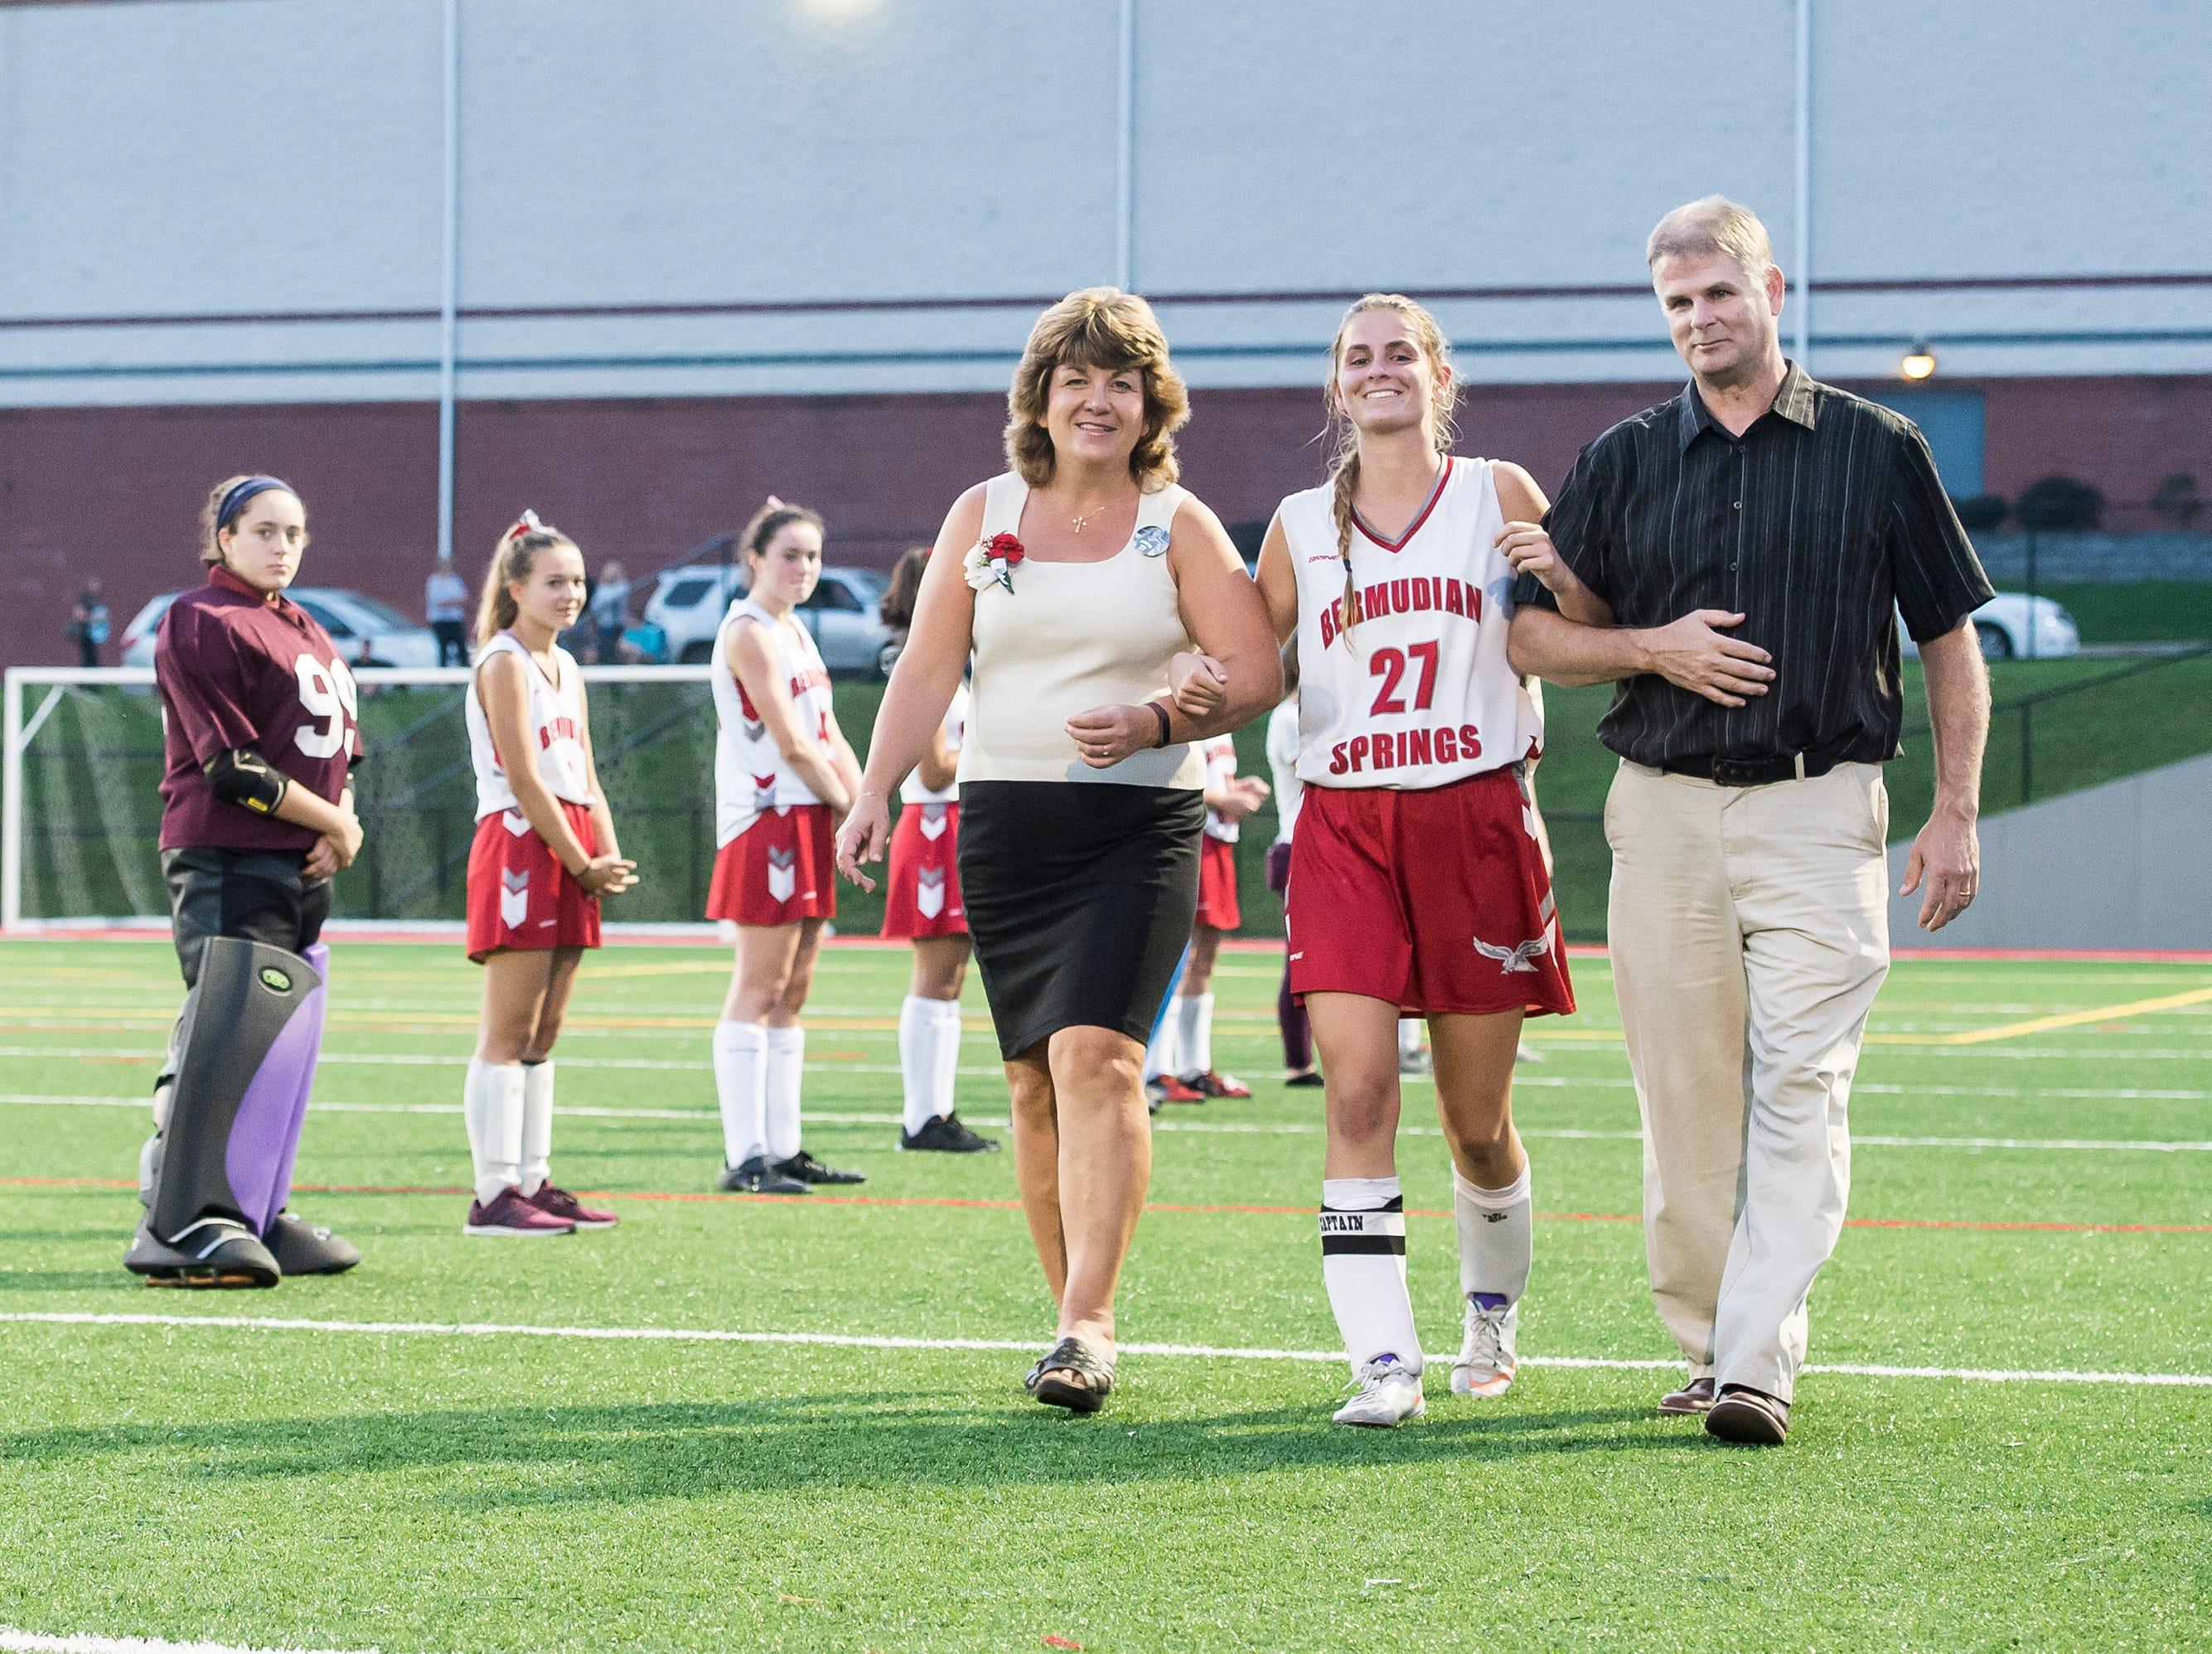 Bermudian Springs senior Kaitlyn McCollum is recognized during a senior appreciation night following a game against Littlestown on Tuesday, October 9, 2018.